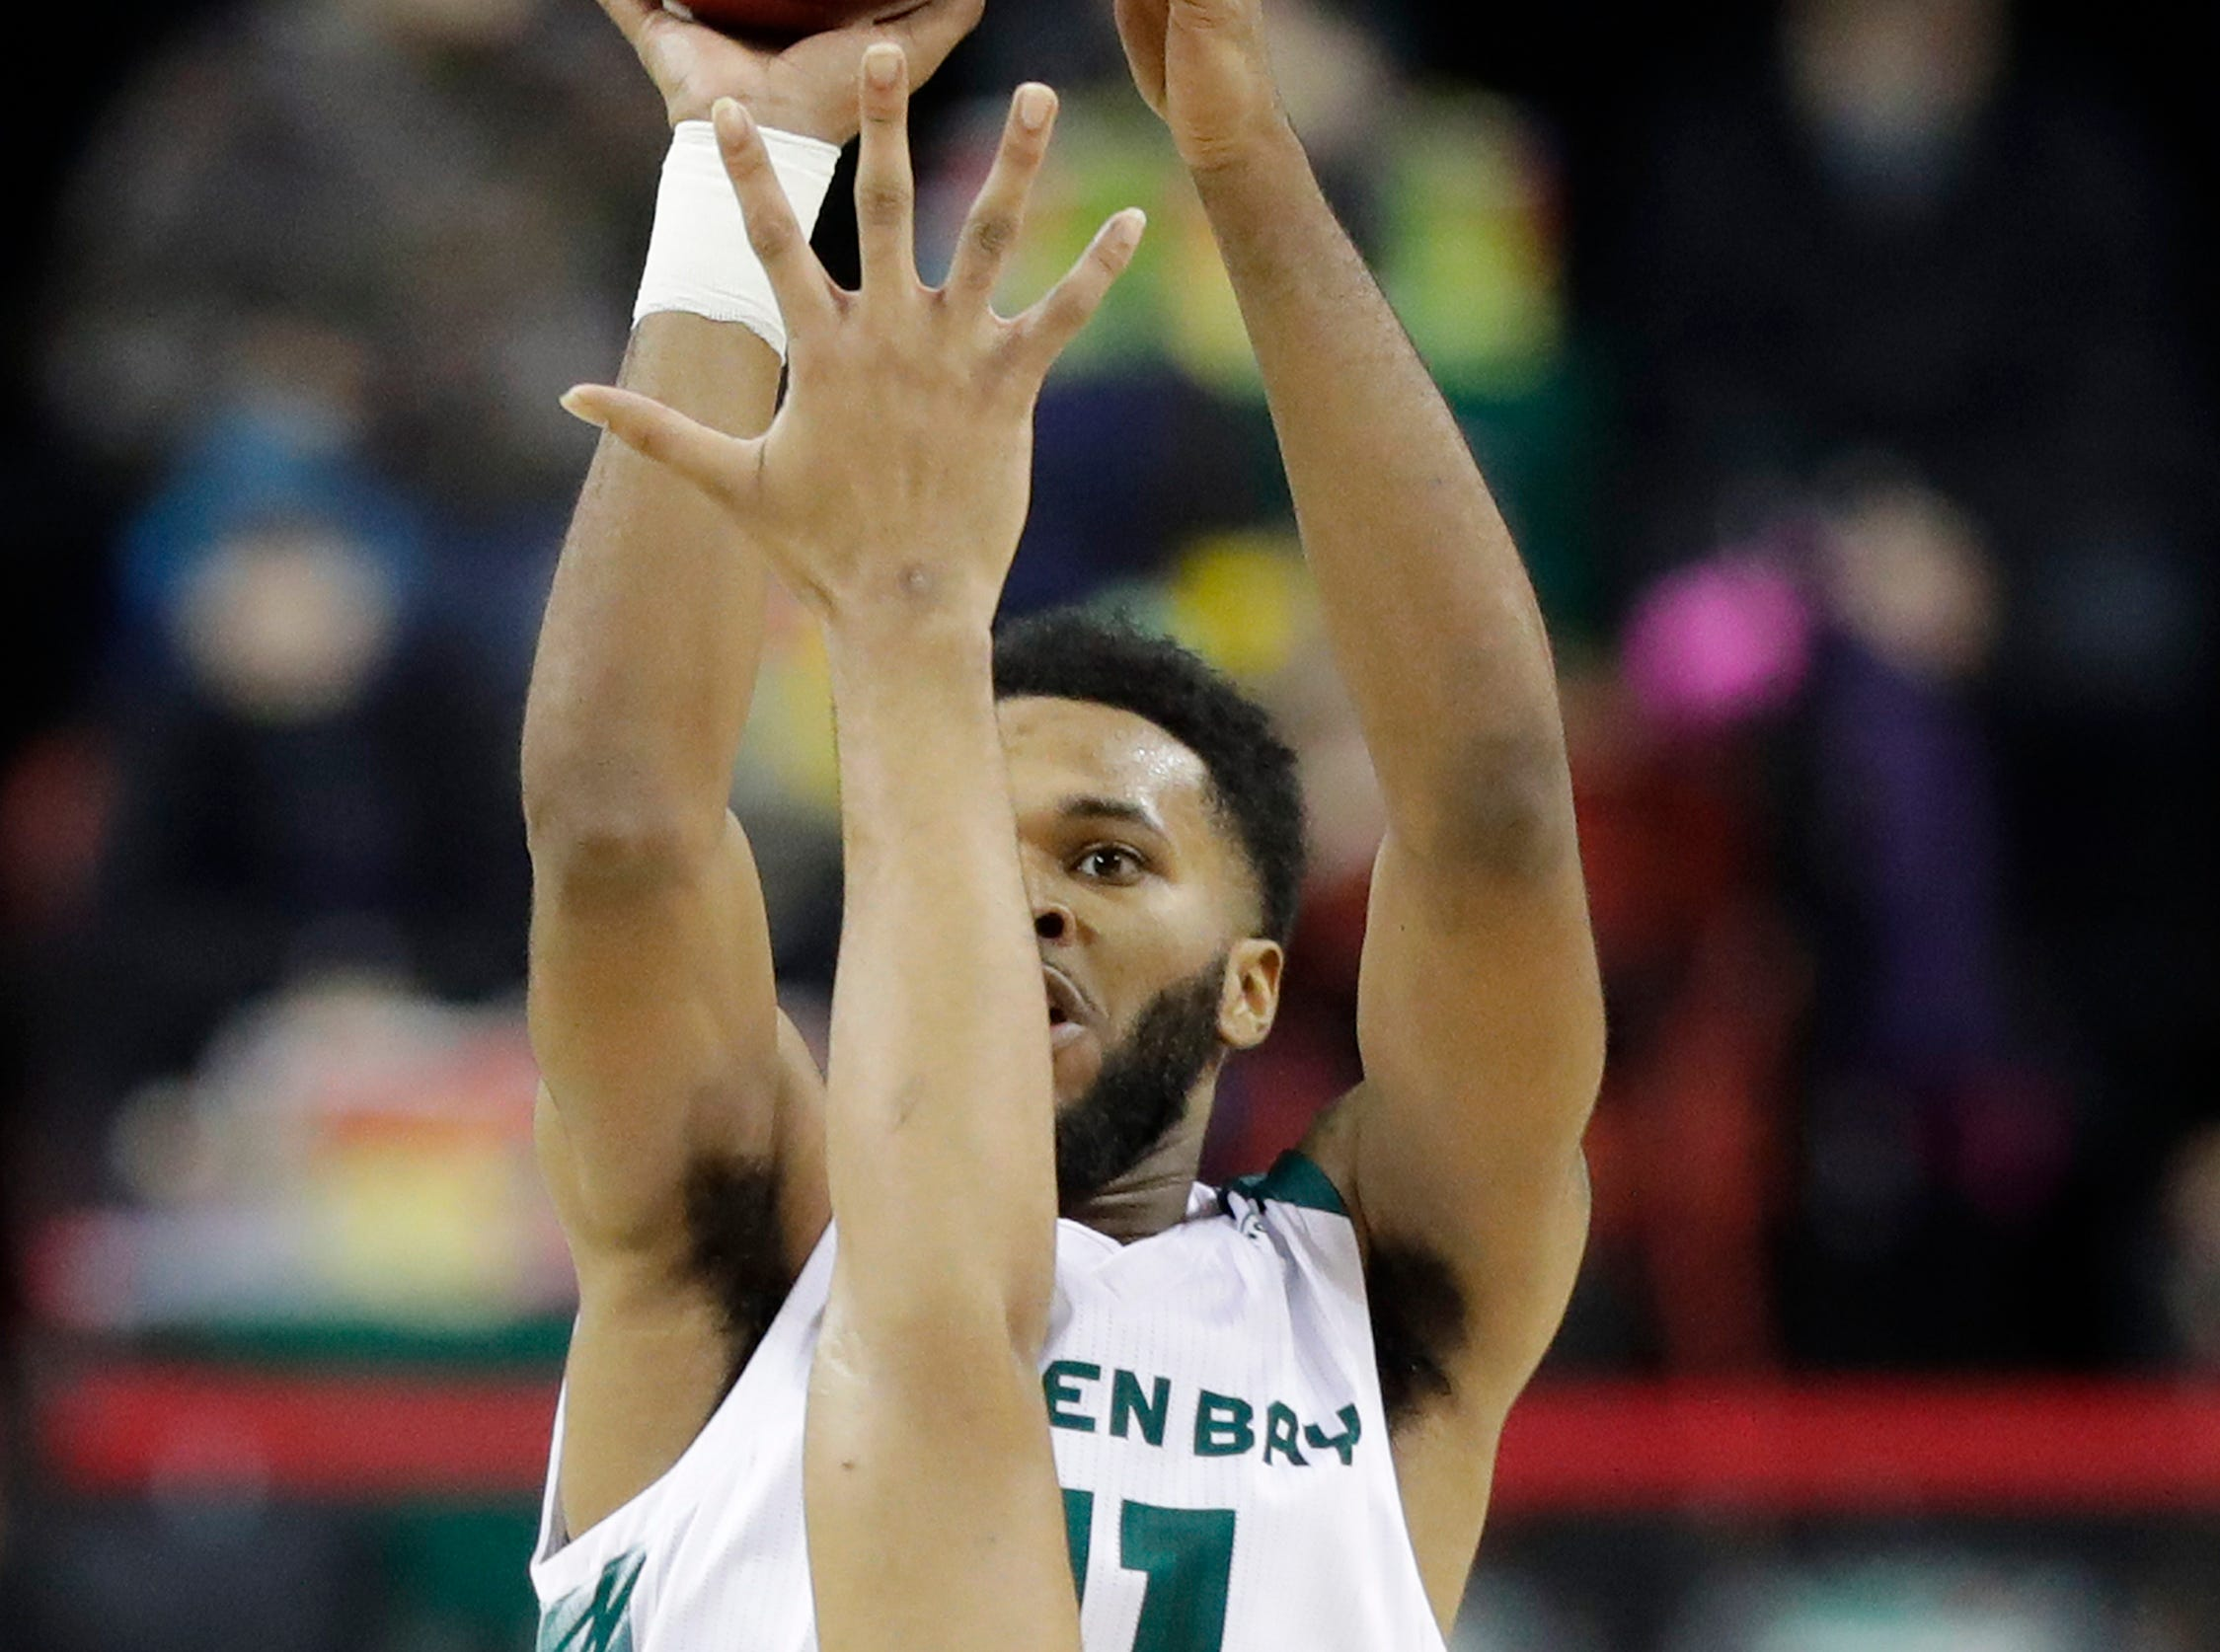 Green Bay Phoenix guard JayQuan McCloud (11) shoots against the Cleveland State Vikings in a Horizon League basketball game at the Resch Center on Saturday, January 5, 2019 in Green Bay, Wis.